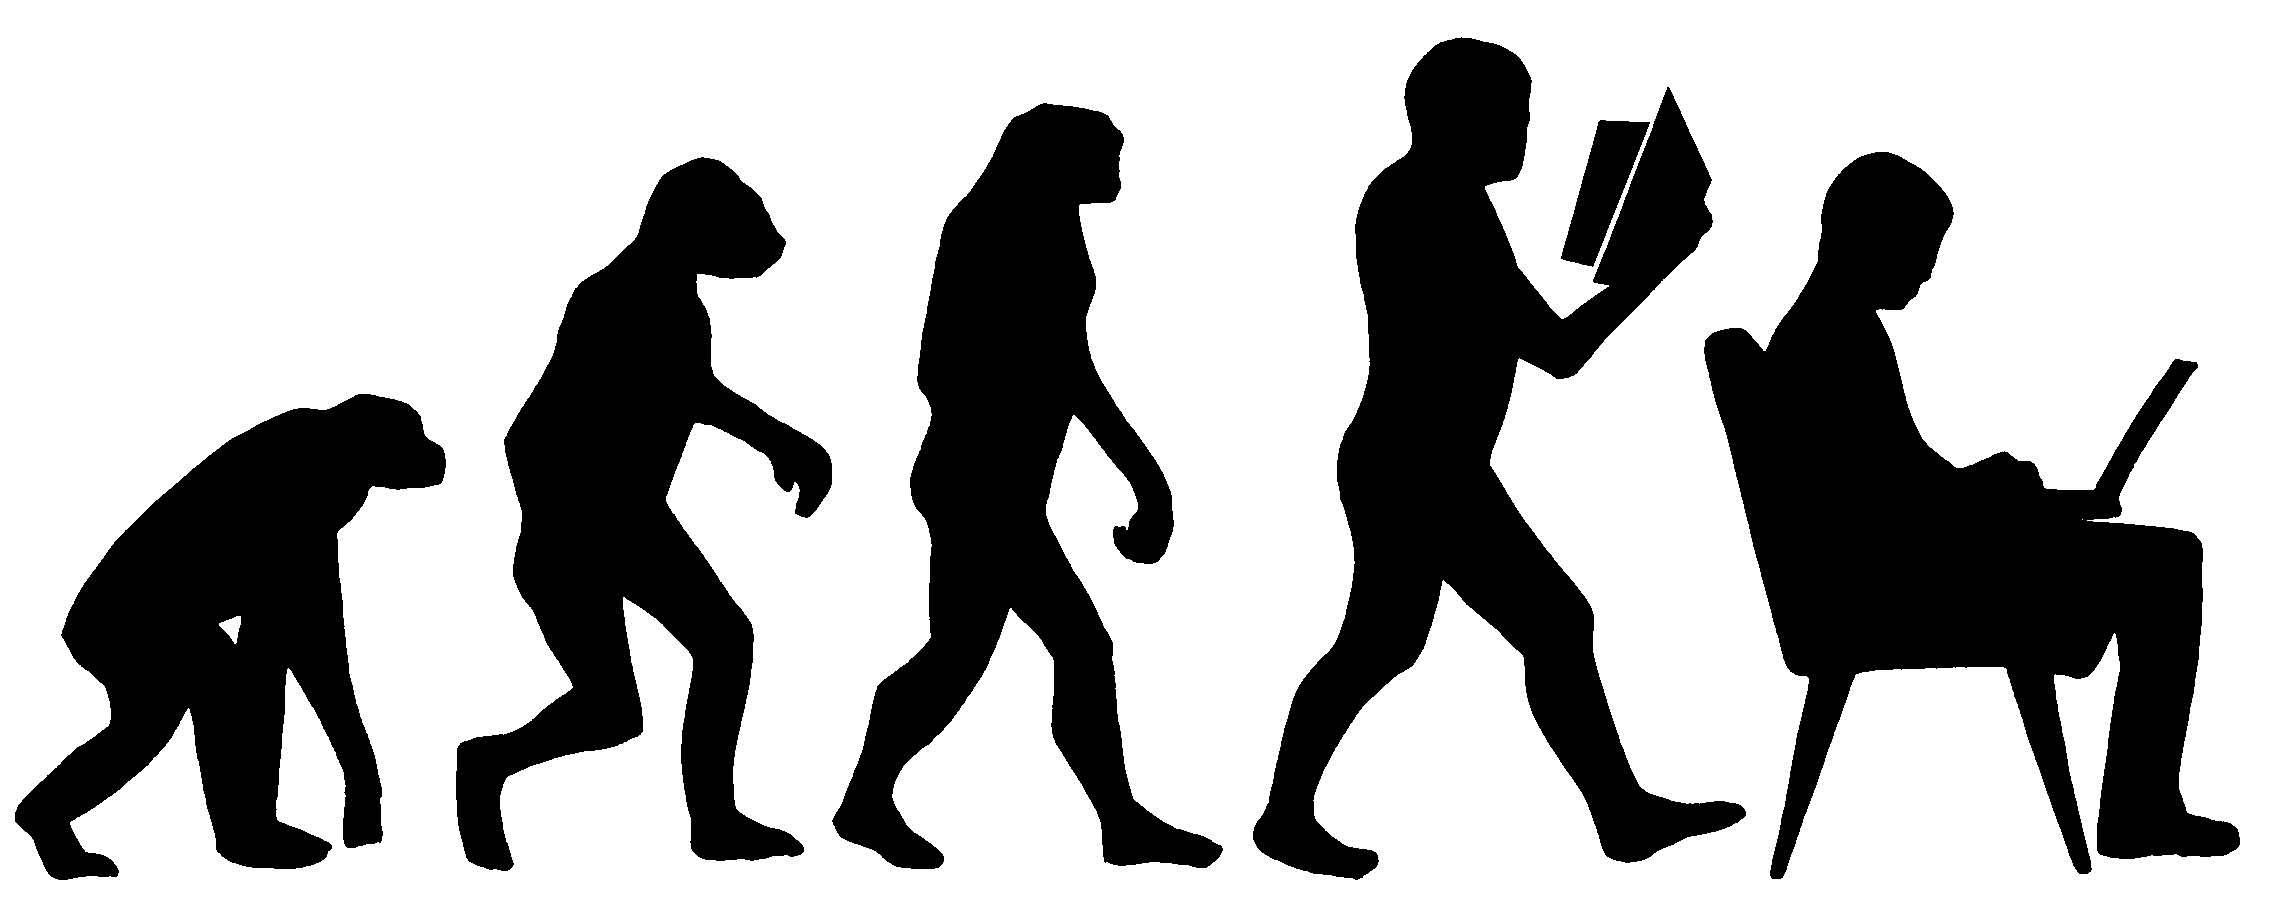 An image of the process of evolution